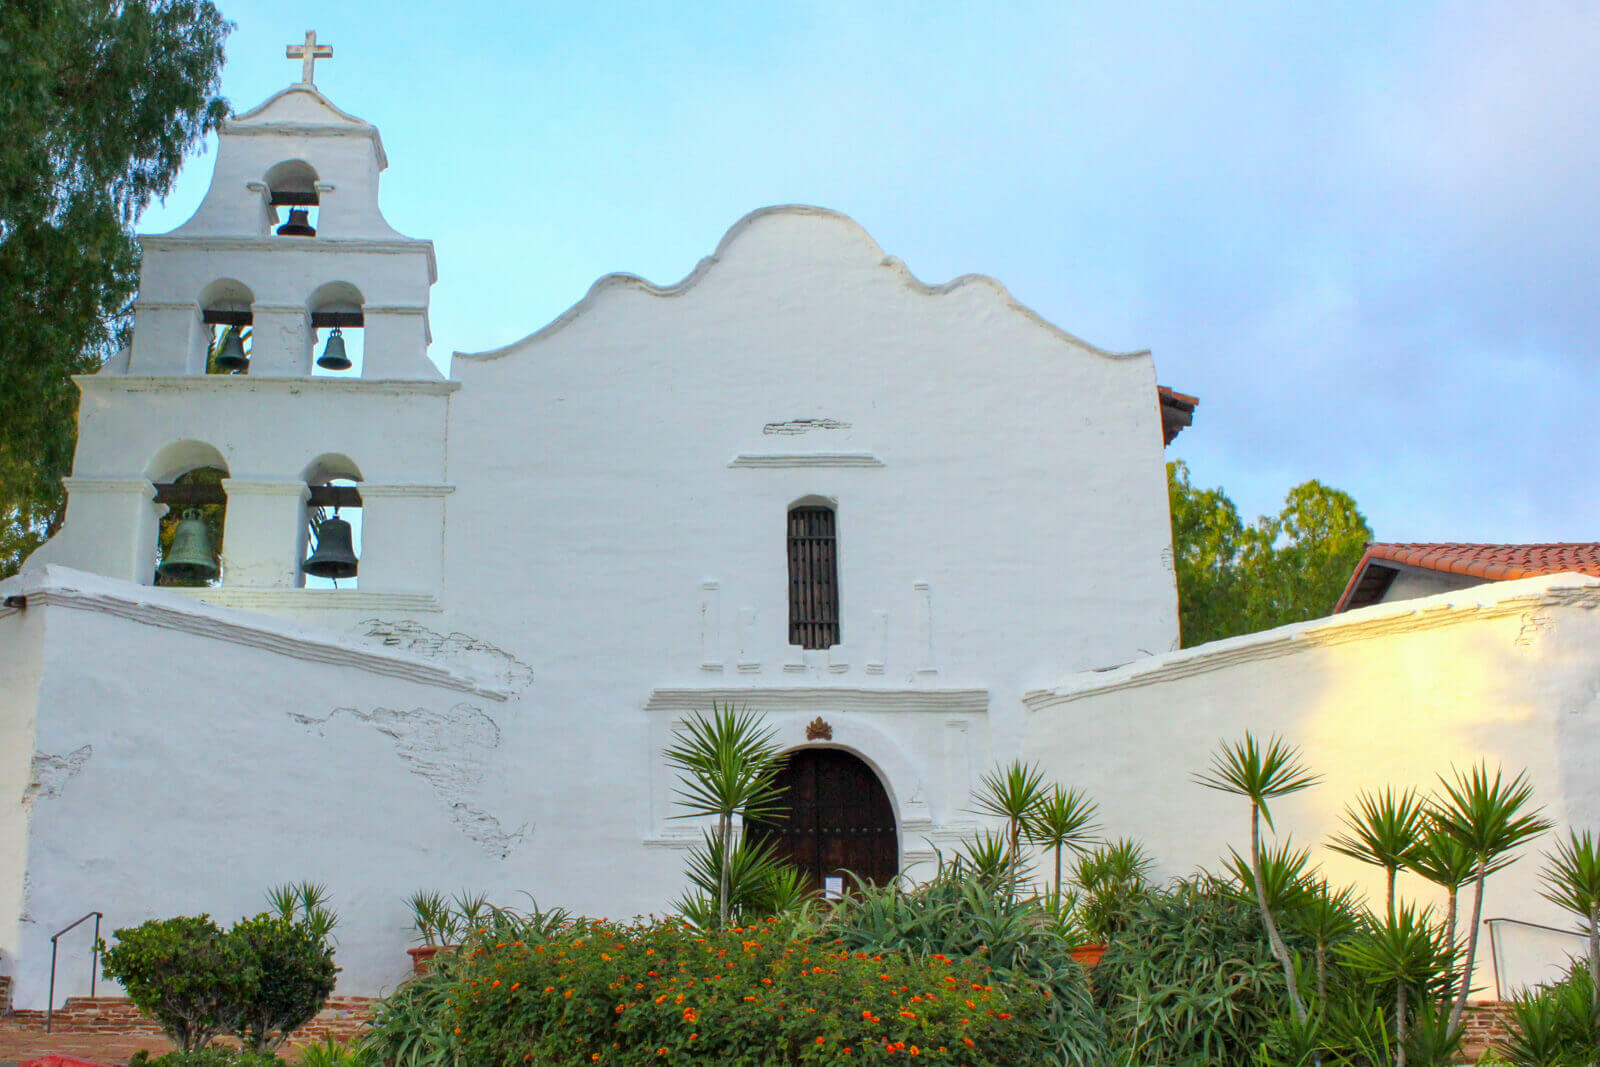 Mission San Diego de Alcalá in California